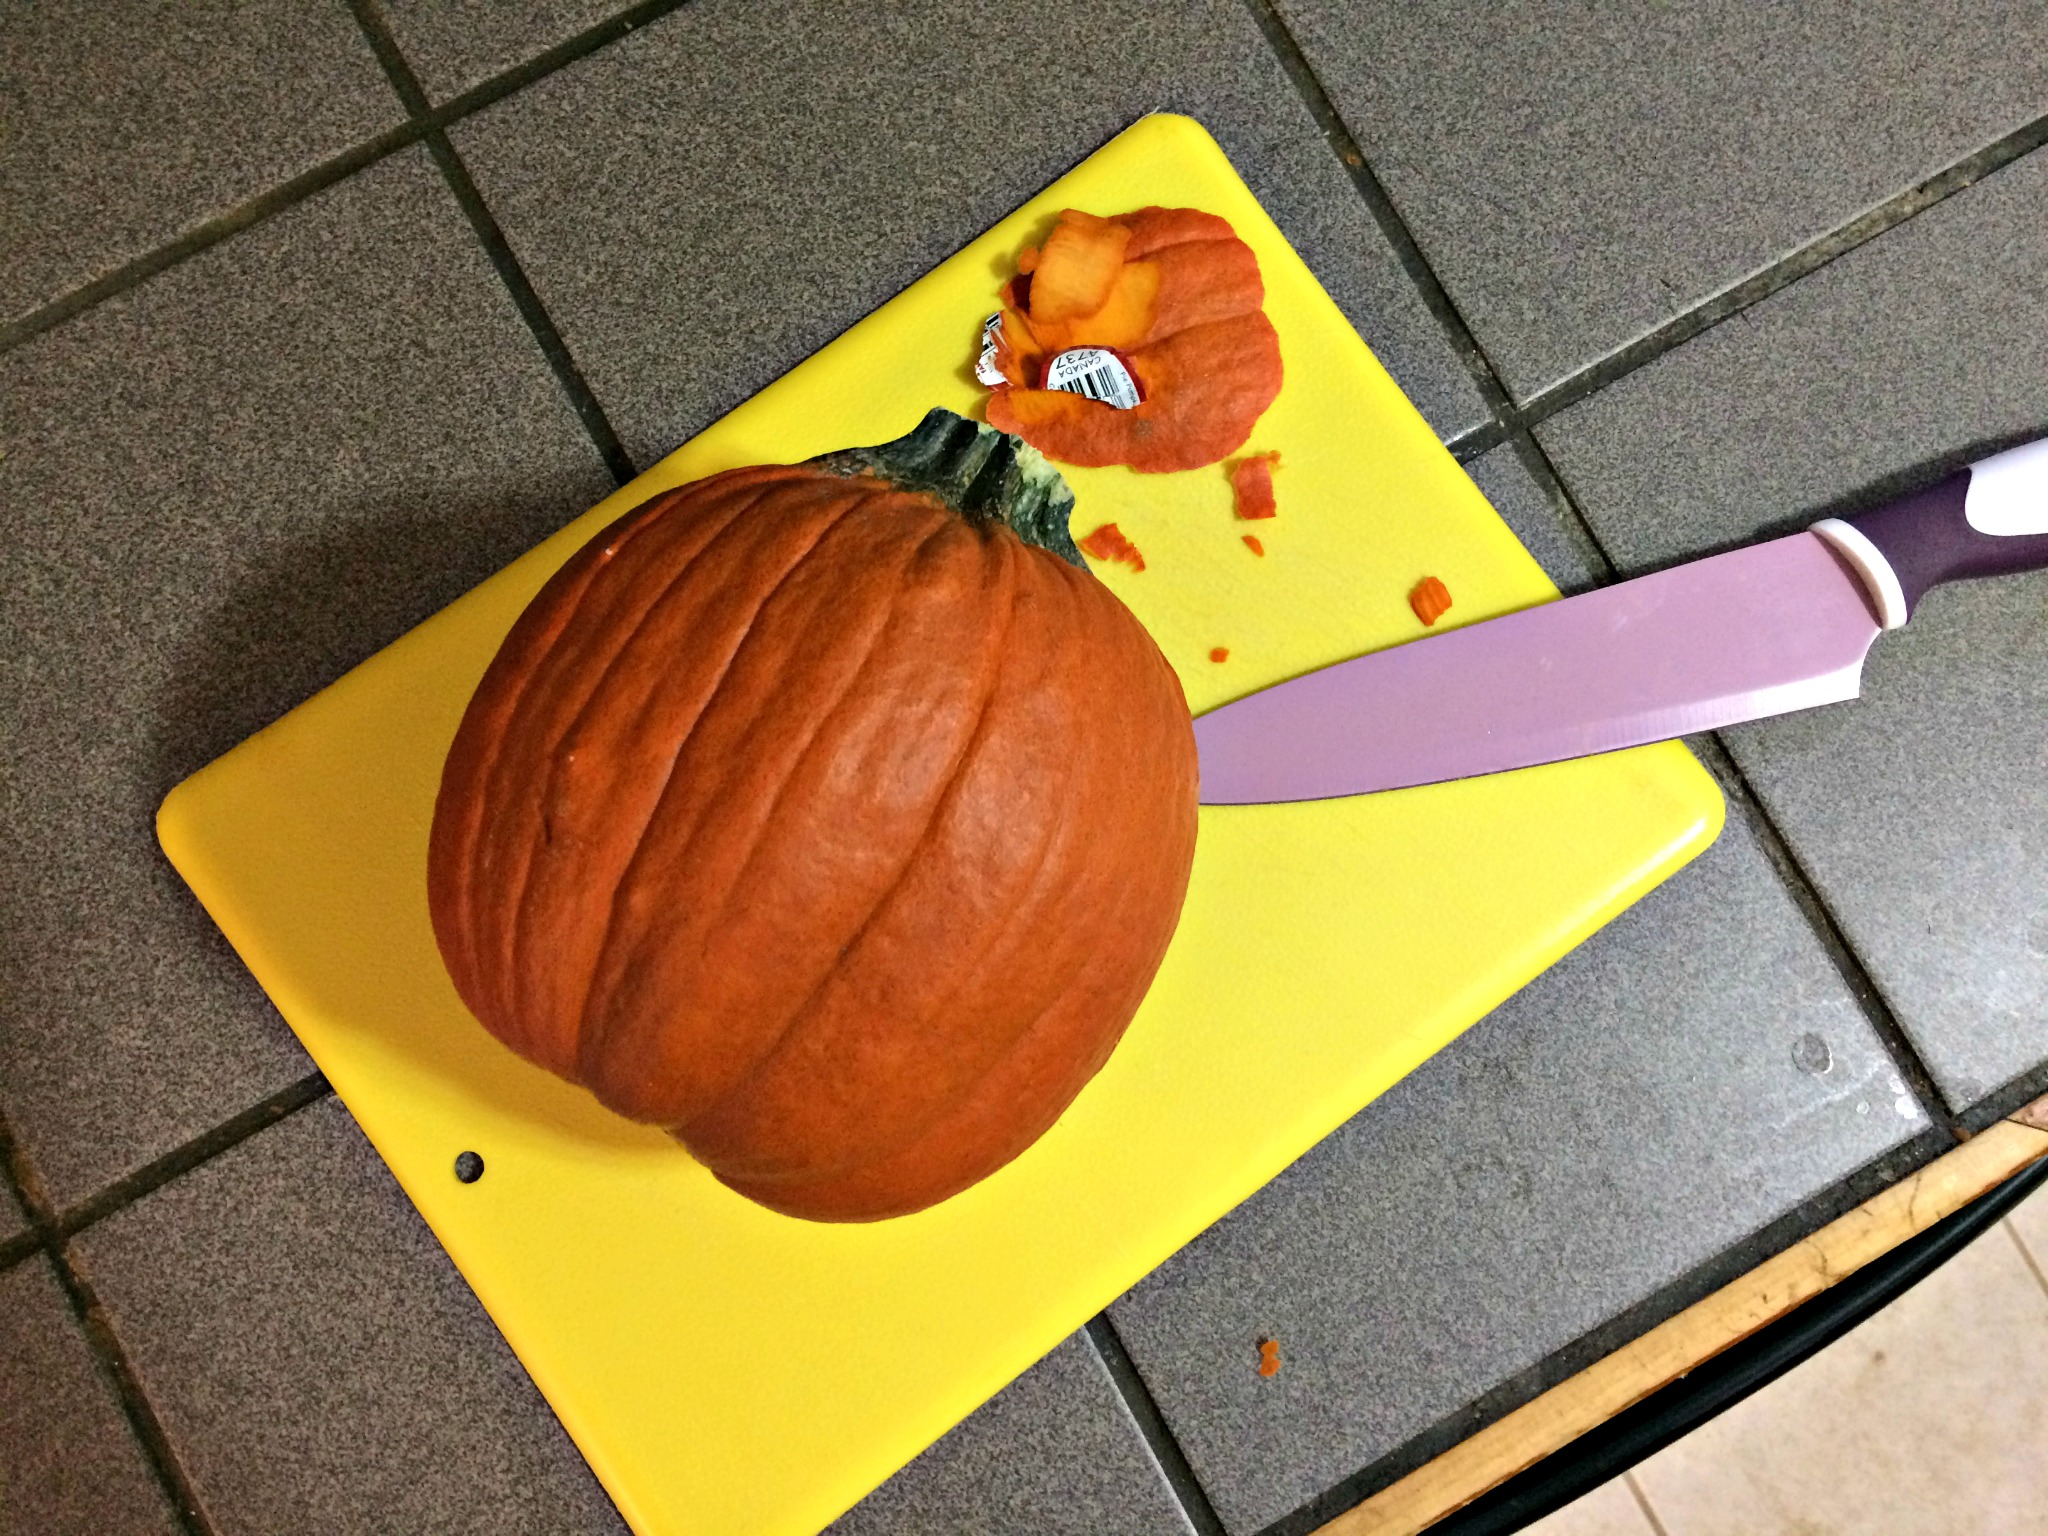 Pro tip: Slice some skin off your pumpkin so it lies flat.